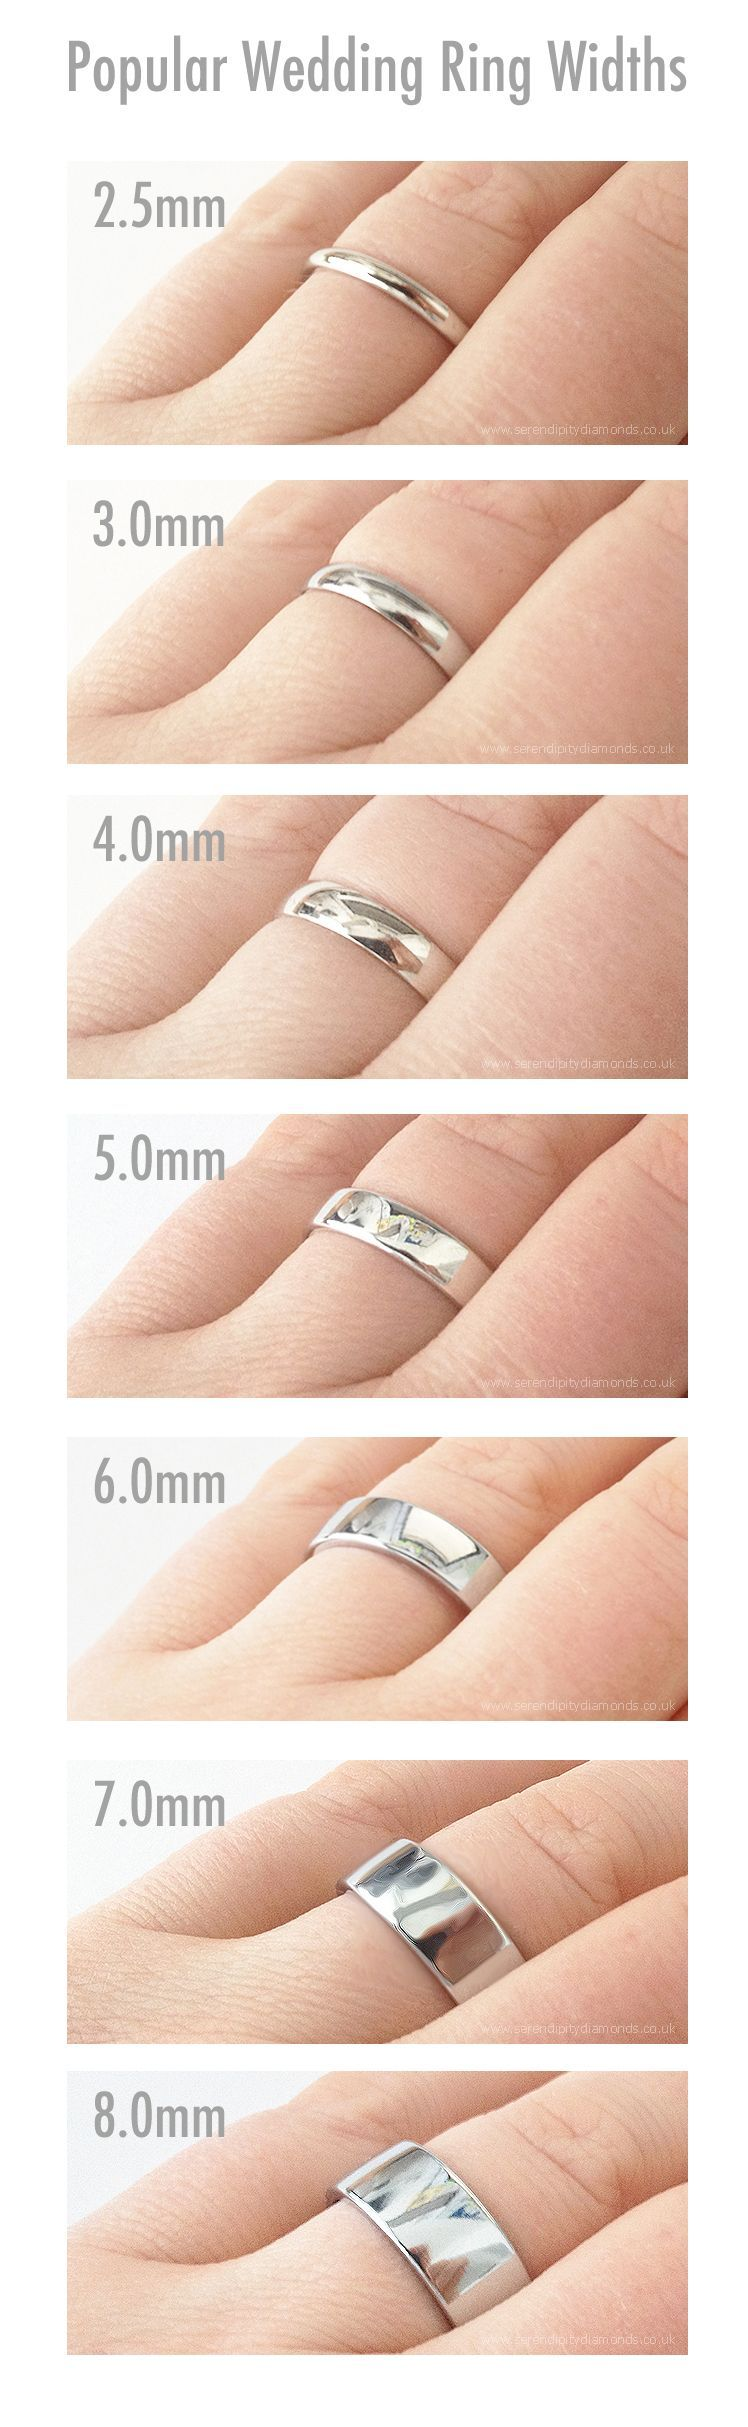 Por Widths Of Plain Wedding Rings Showing 2 5mm To 8mm As Choices For Men S Weddingring